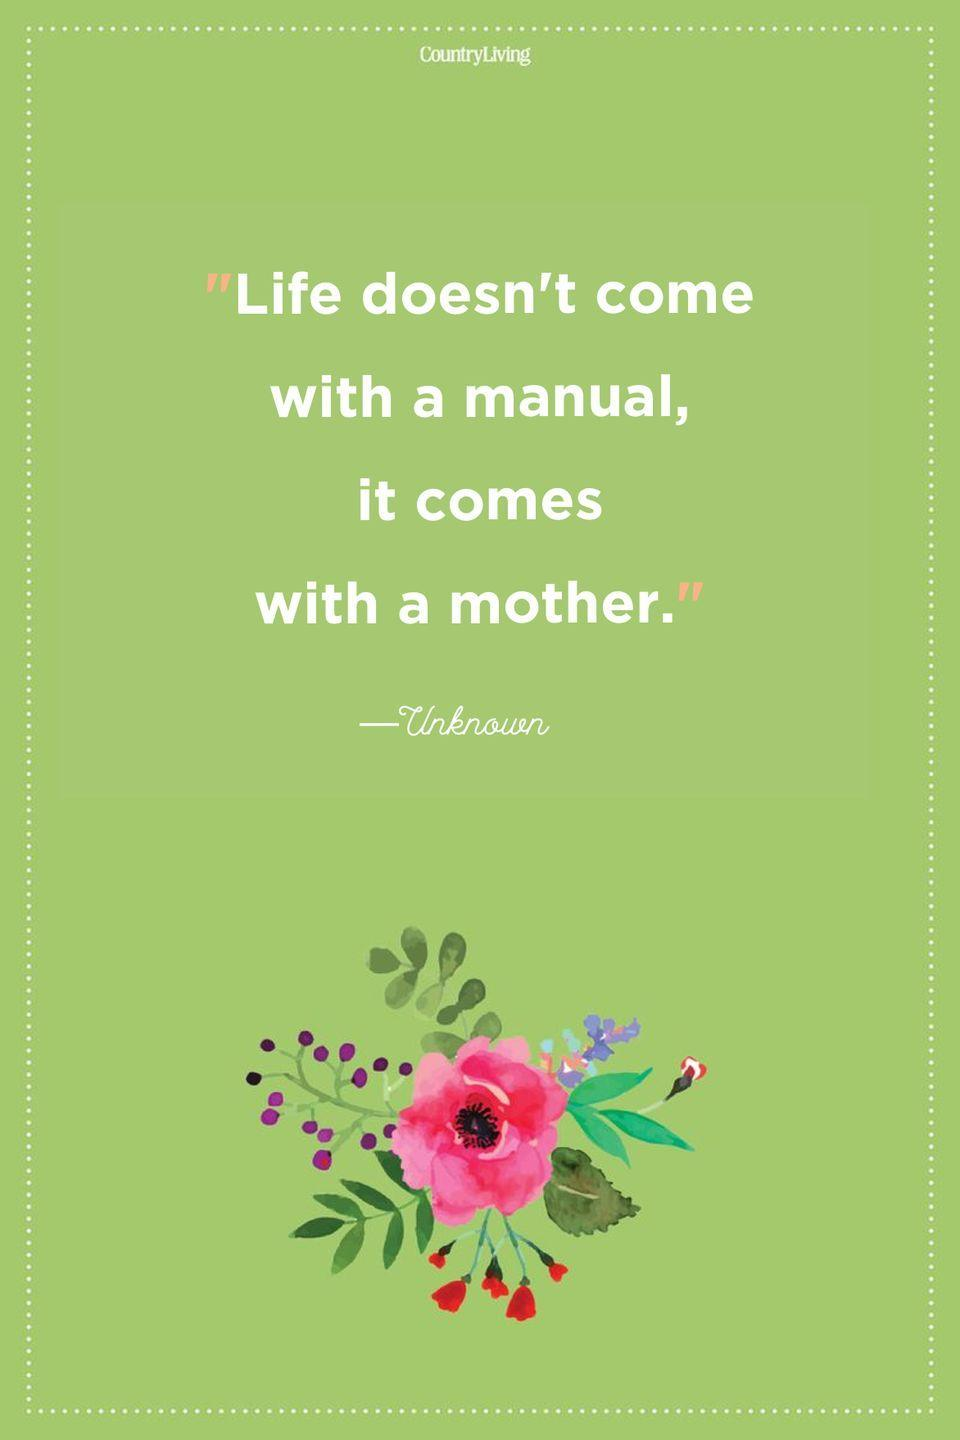 "<p>""Life doesn't come with a manual, it comes with a mother.""</p>"